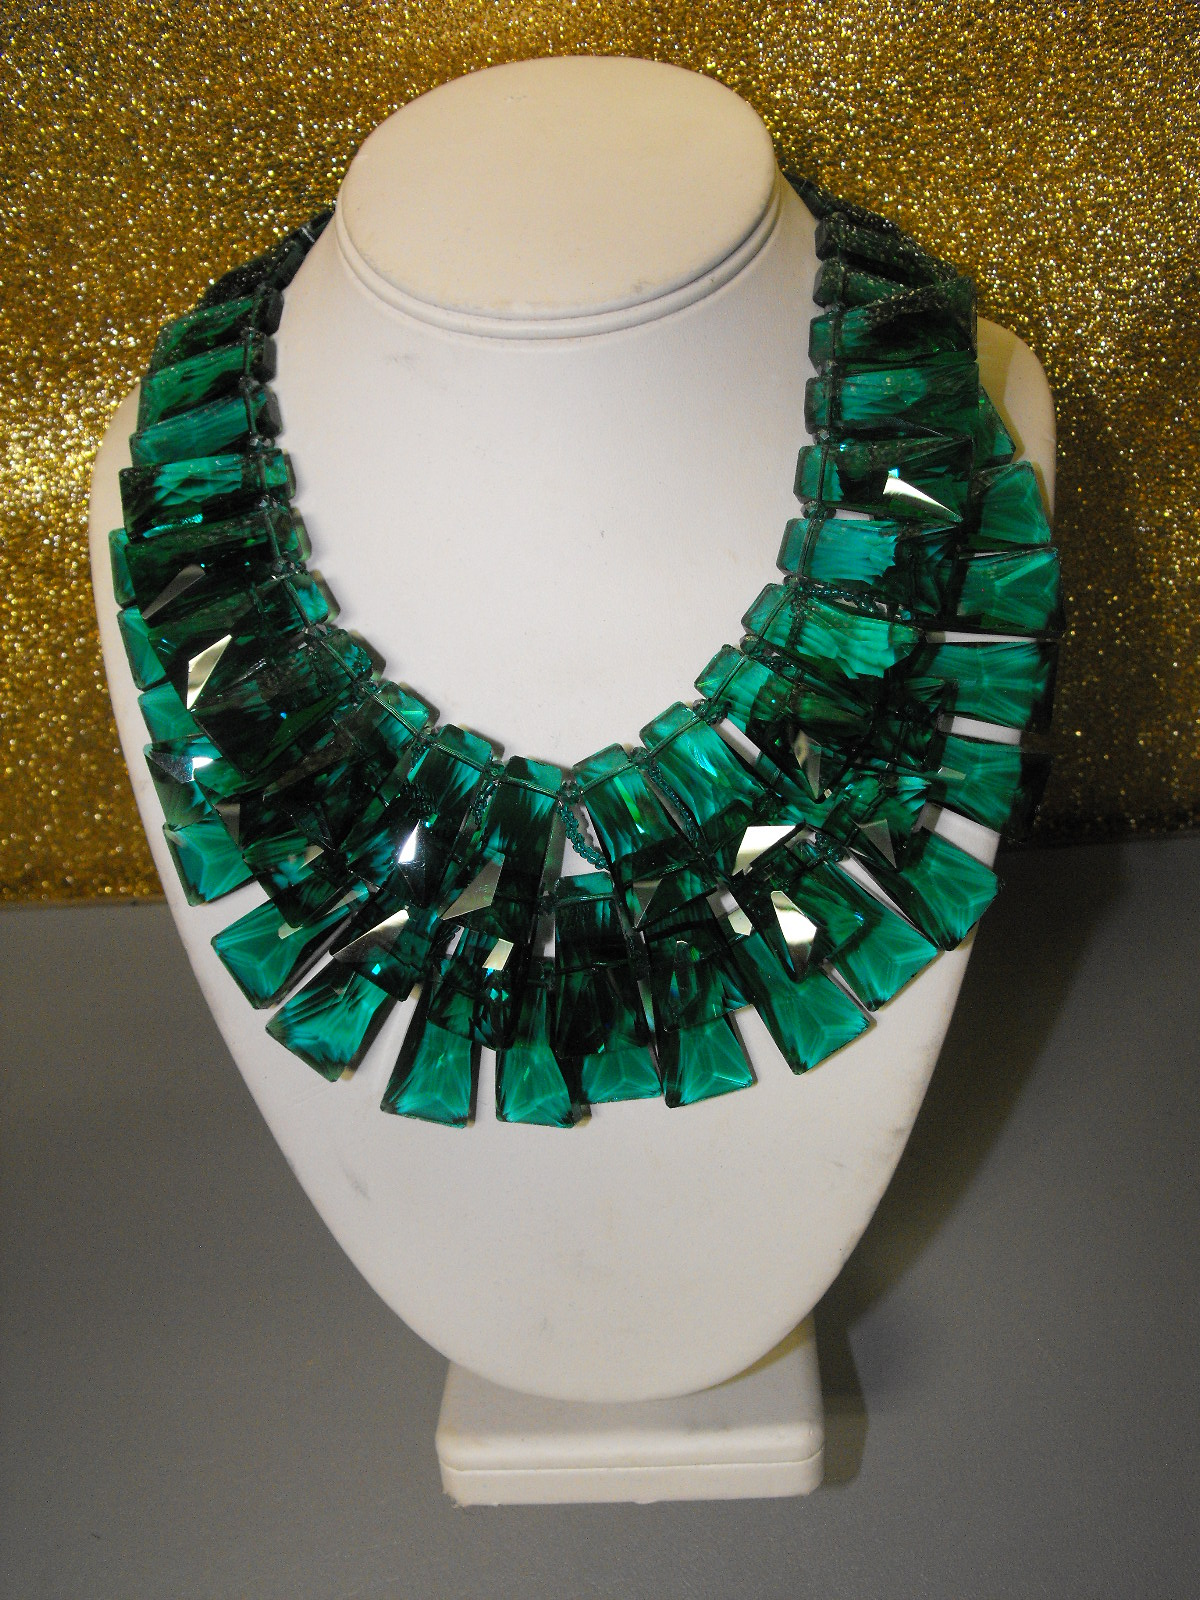 Emerald Green Faceted Crystal Layered Necklace Clive S